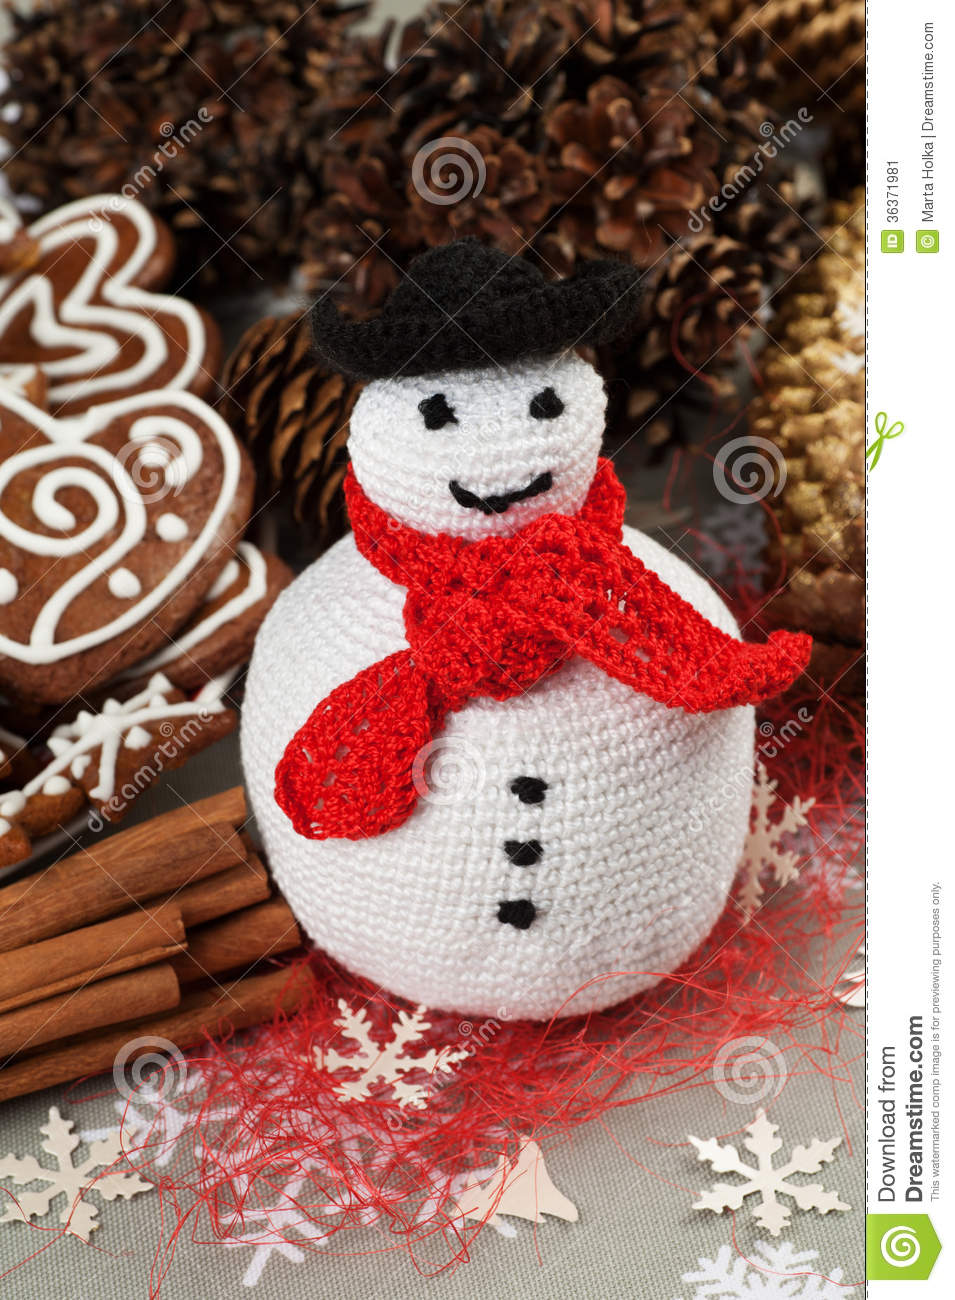 D coration faite maison de crochet de no l image stock - Decoration de noel fait maison ...